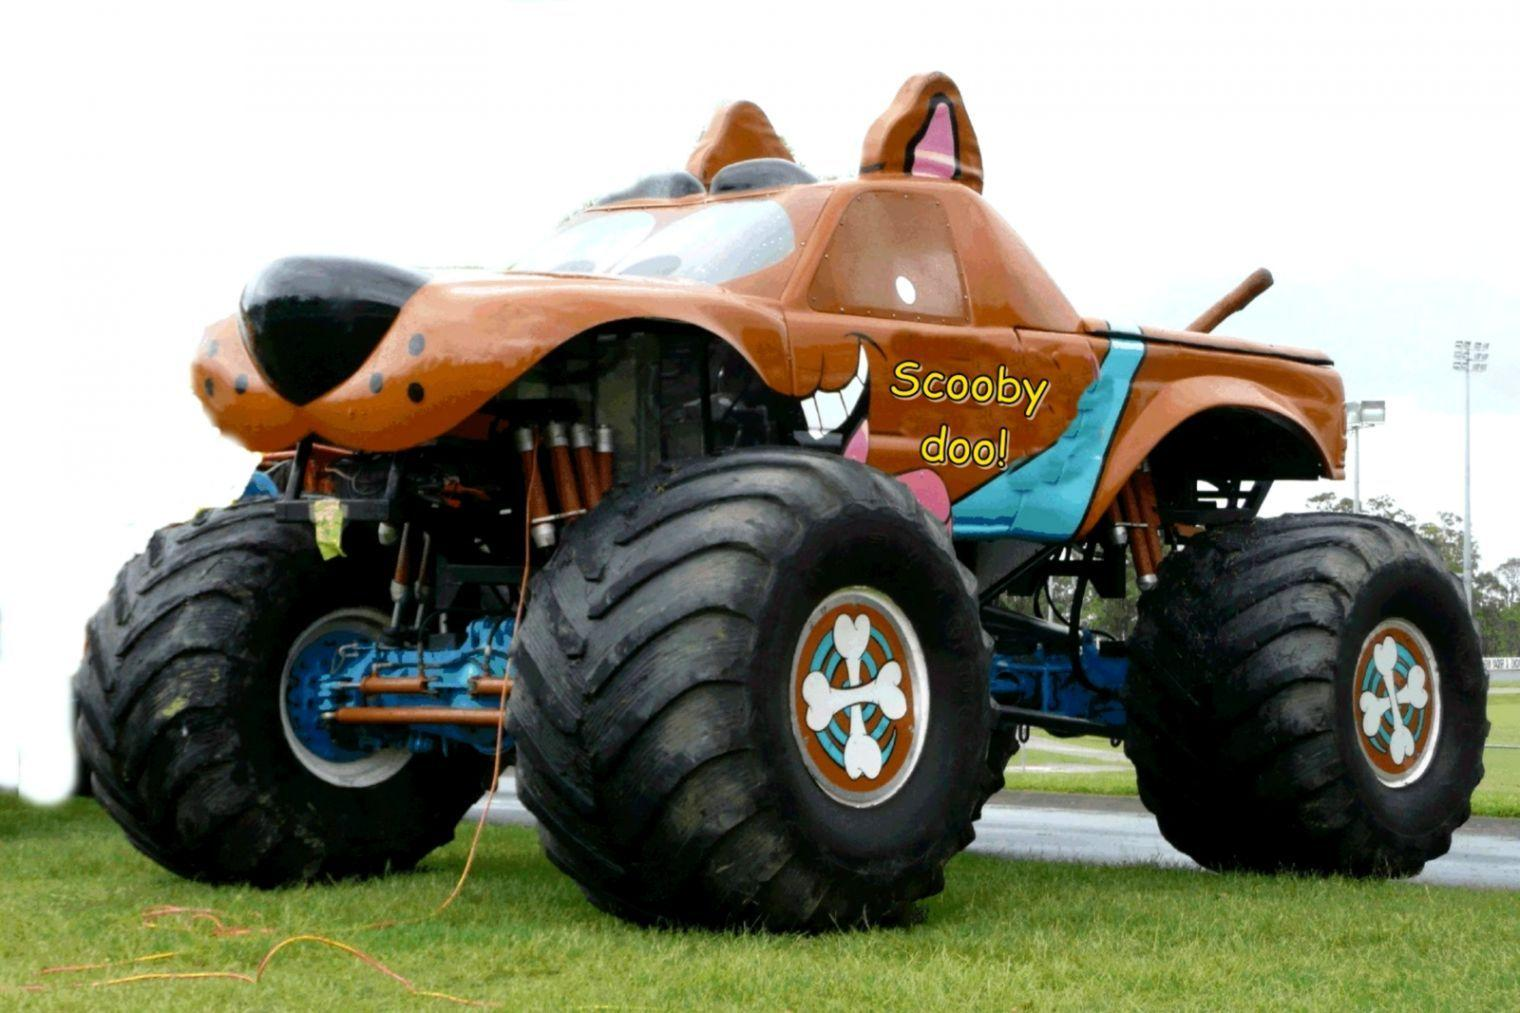 El Toro Lloco Monster Truck Wallpaper Desktop | Wallpaper Background HD